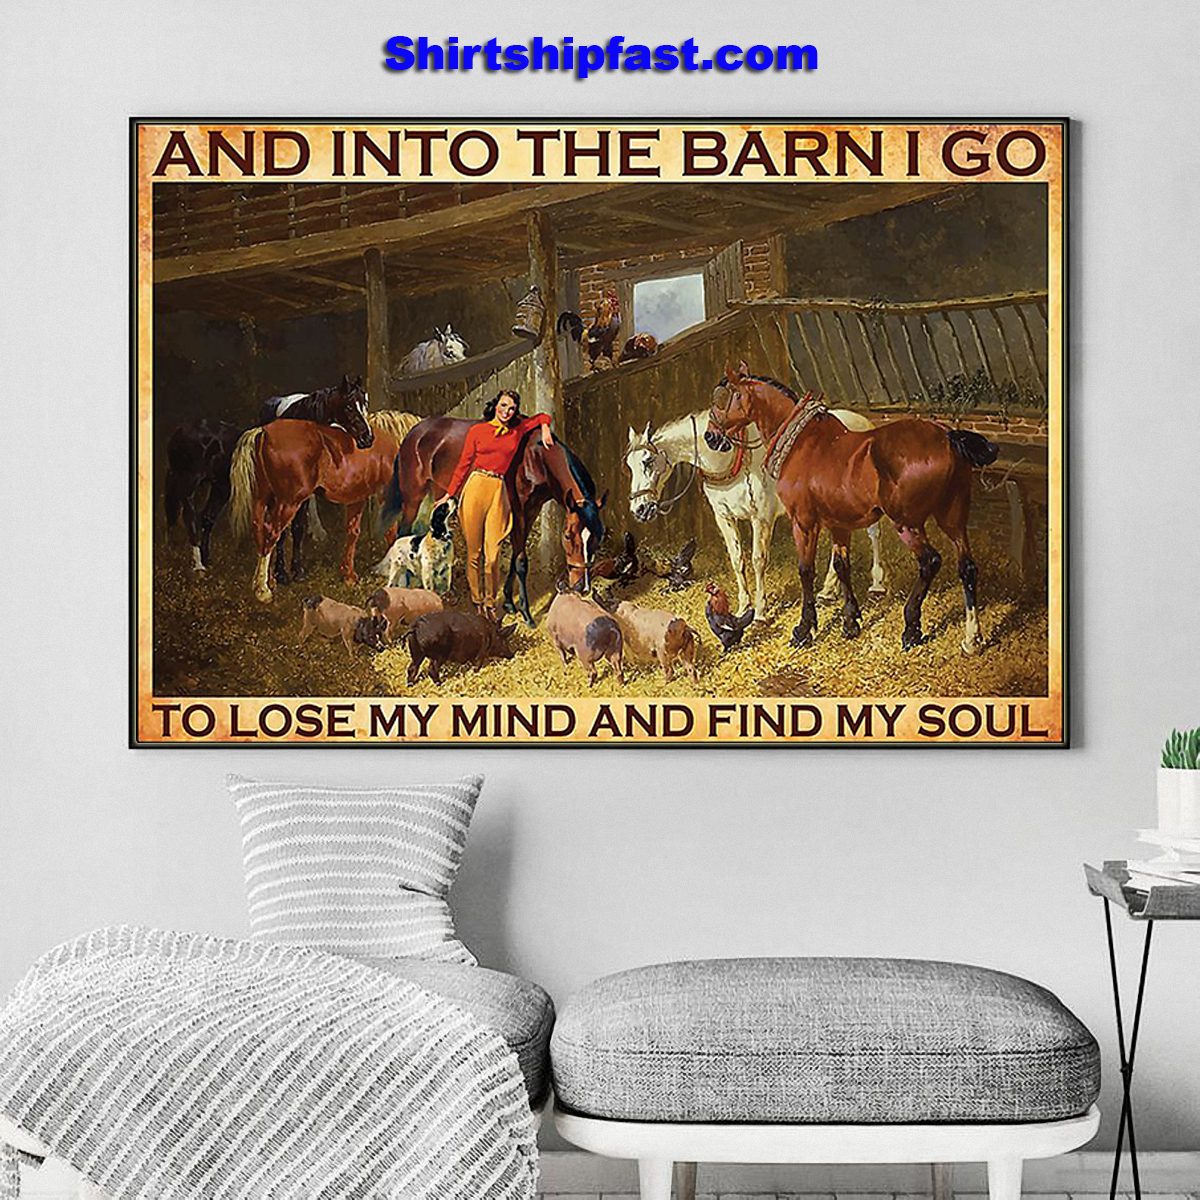 And into the barn Cowgirl poster - Picture 3